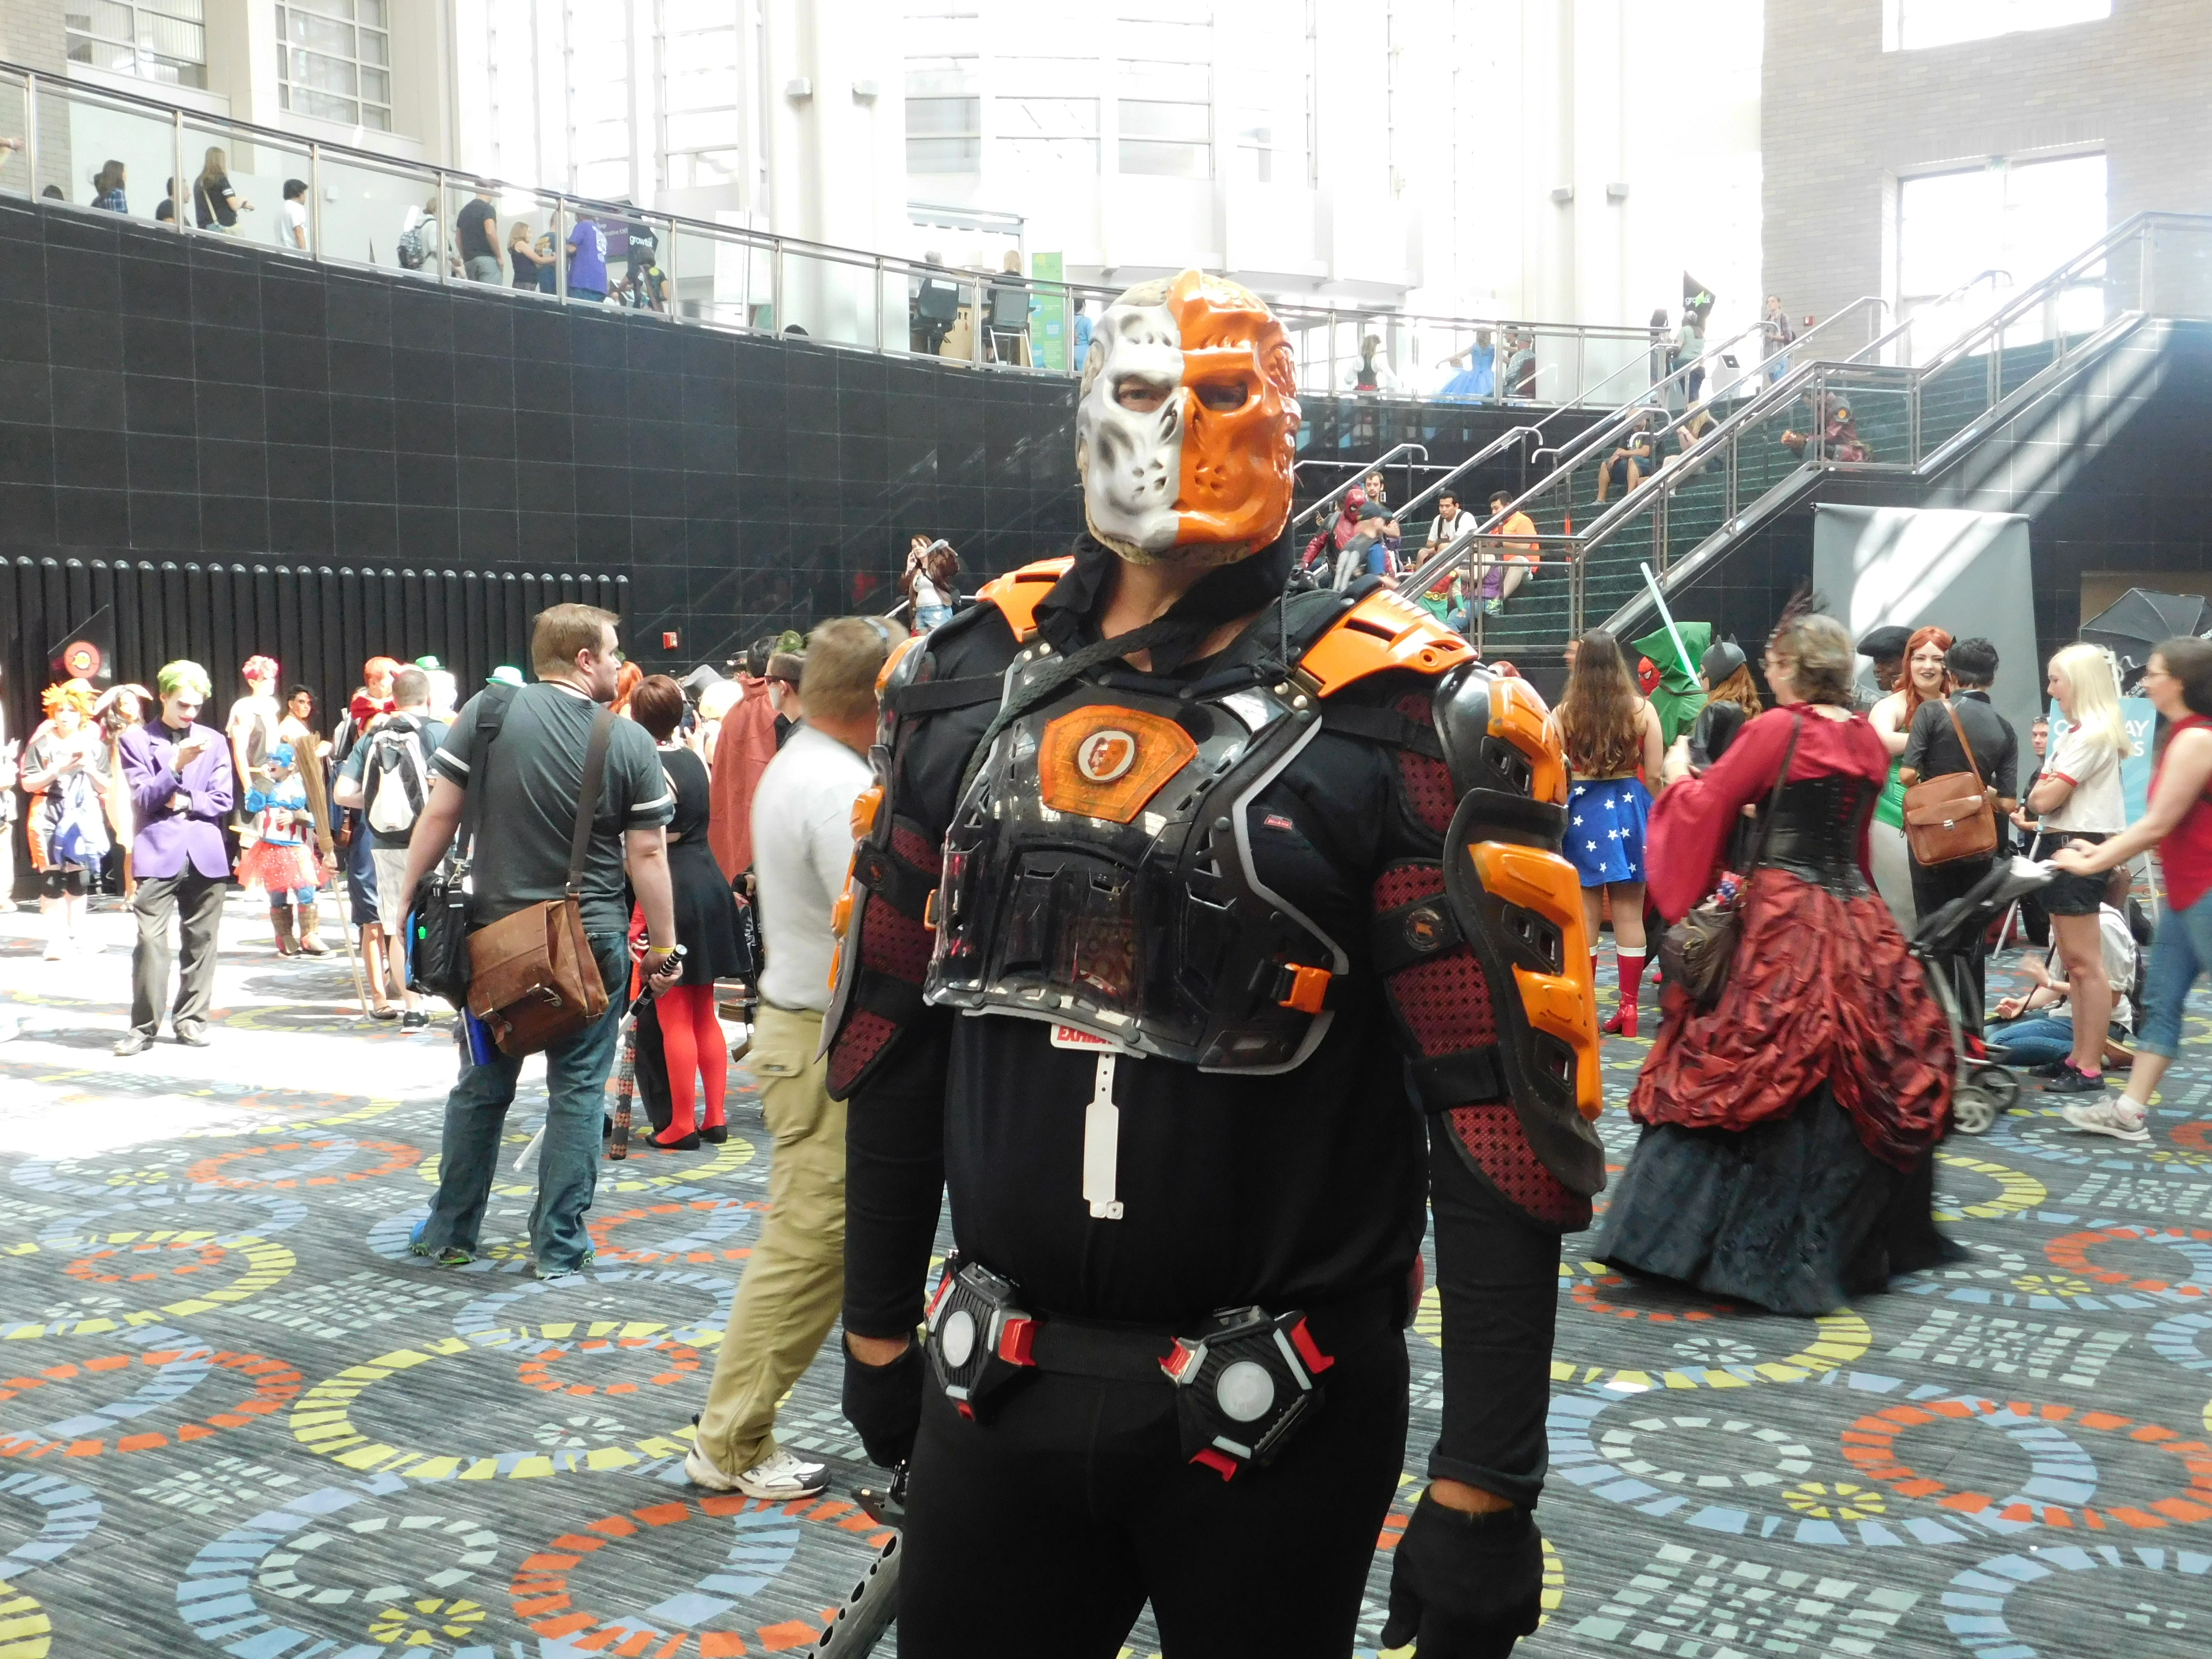 SLCCd2.033 - Is that a scary looking Deathstroke I see